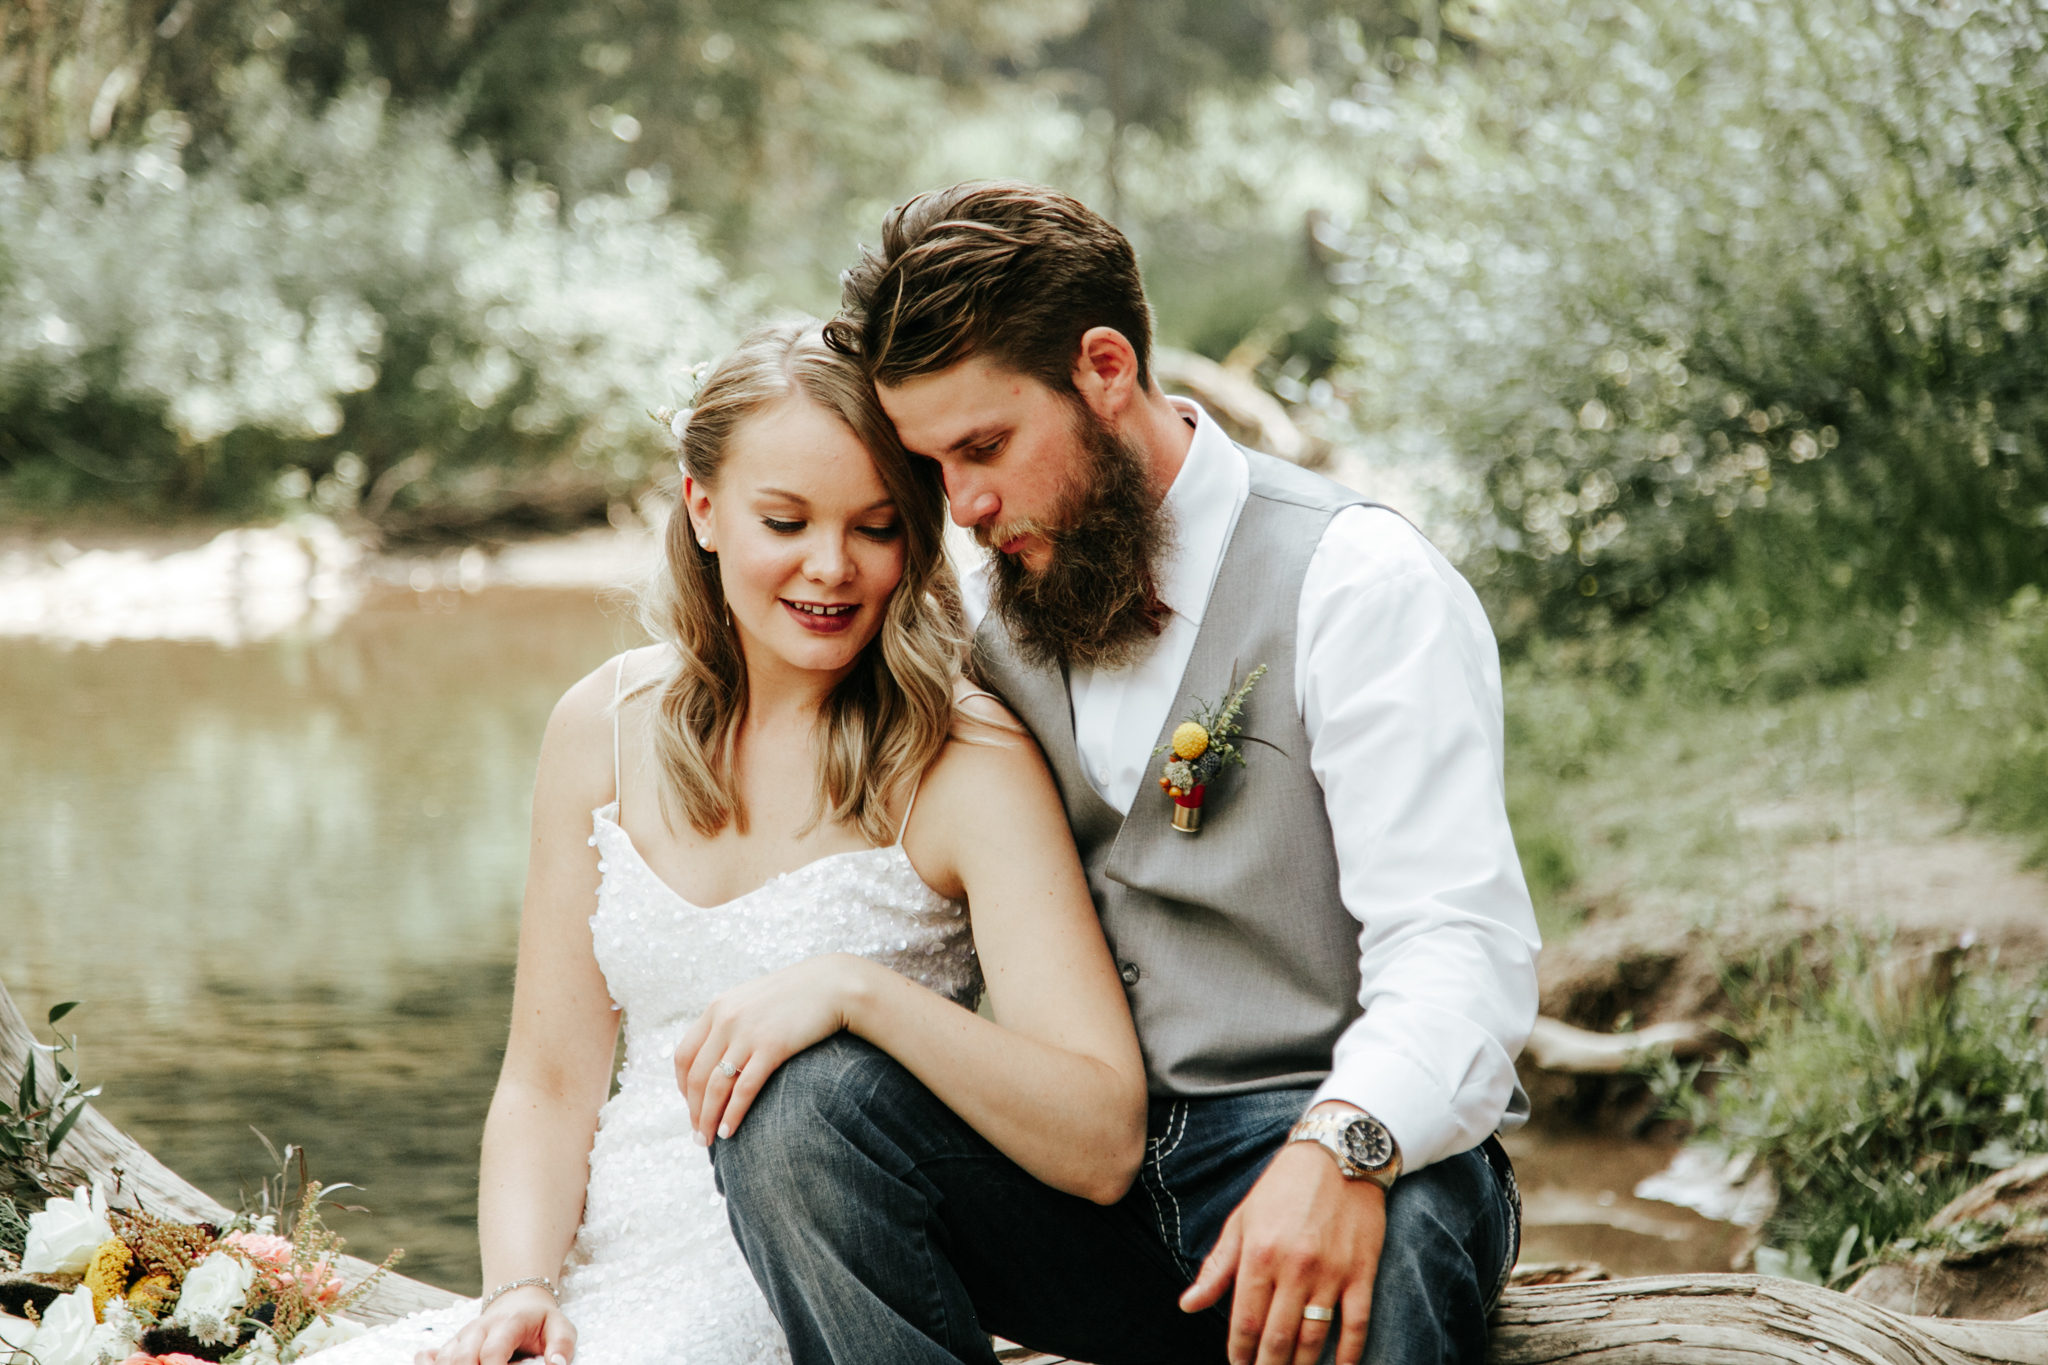 castle-mountain-wedding-photographer-love-and-be-loved-photography-lethbridge-pincher-creek-crowsnest-pass-yannick-rylee-photo-image-picture-142.jpg